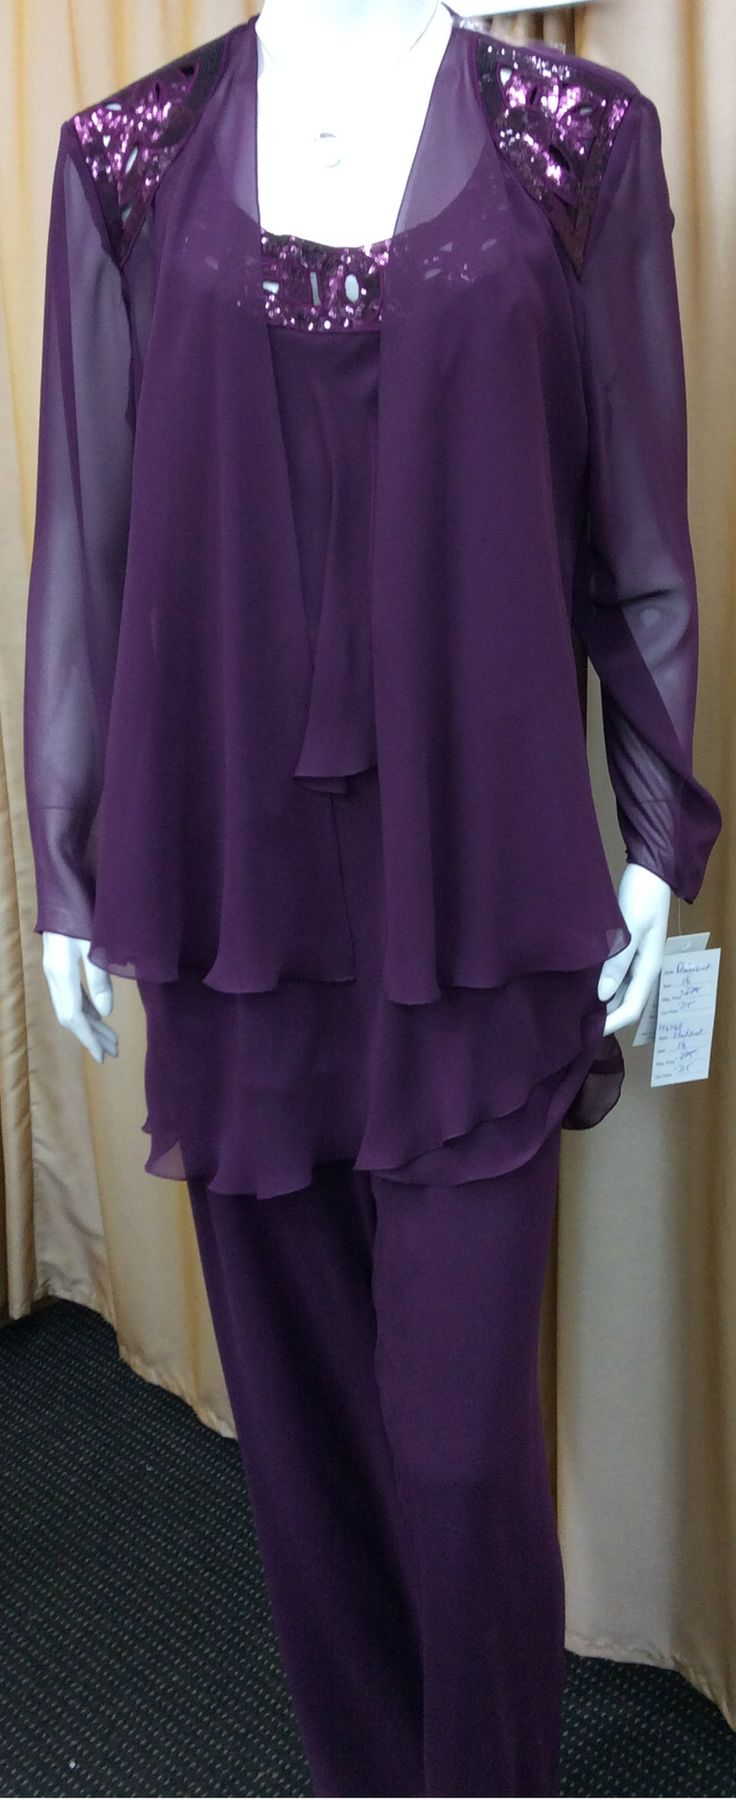 3 Pieces Chiffon Pant Suit Pull On Pants Fully Lined